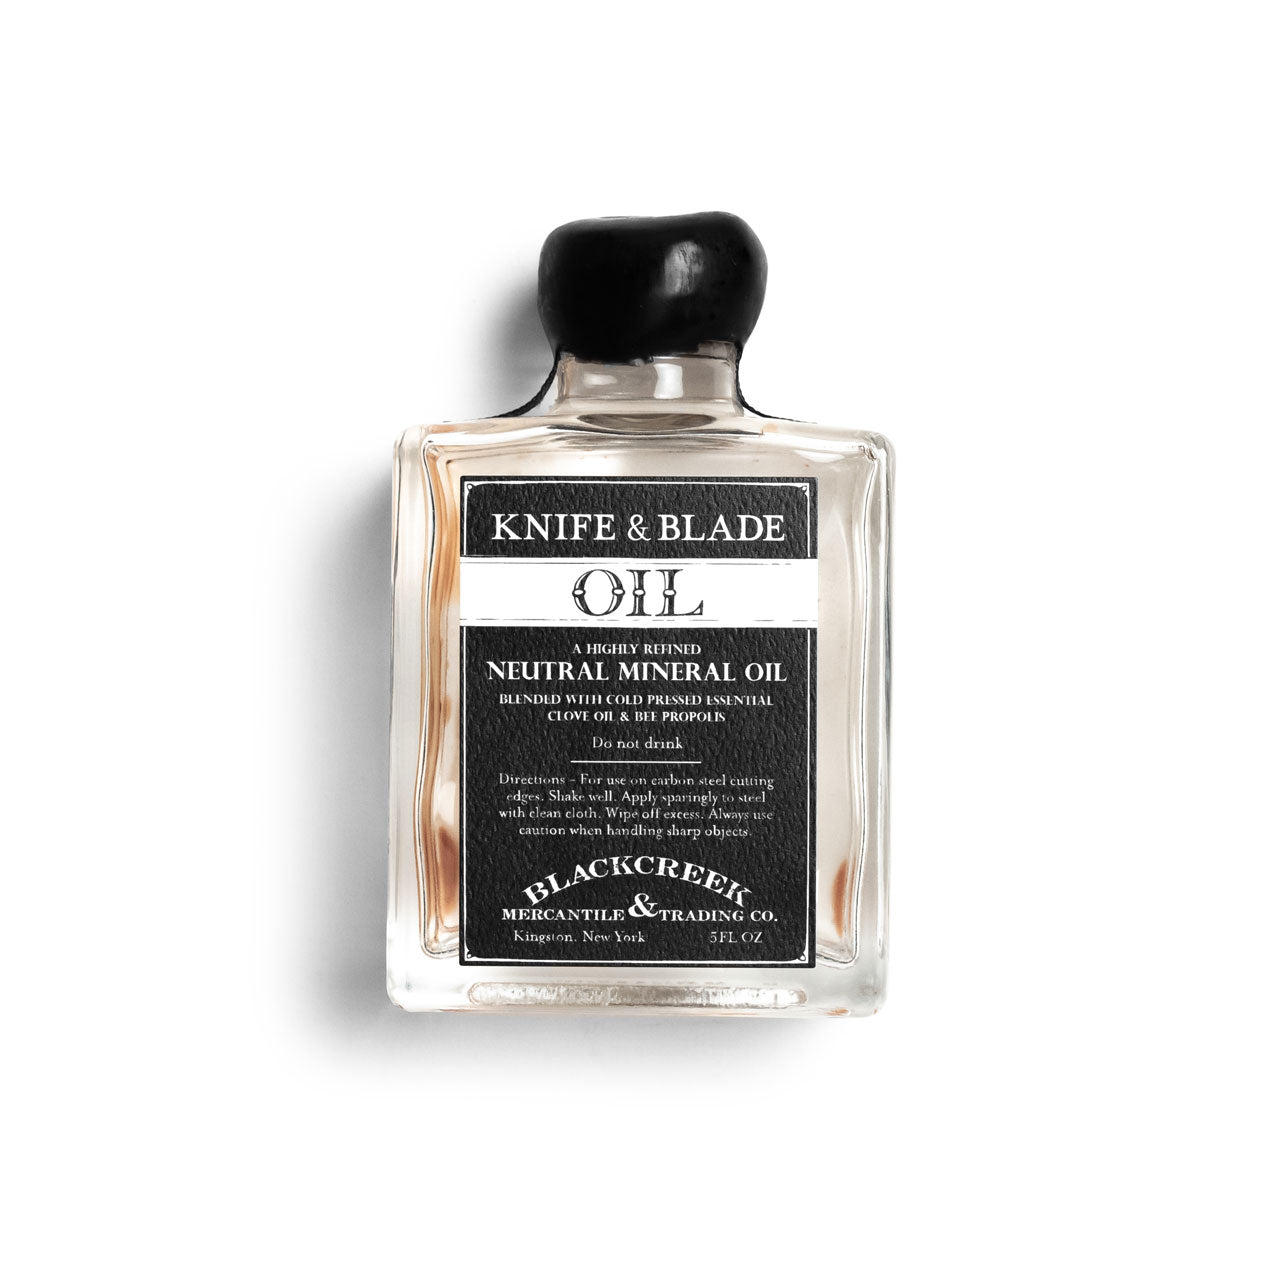 Knife & Blade Oil